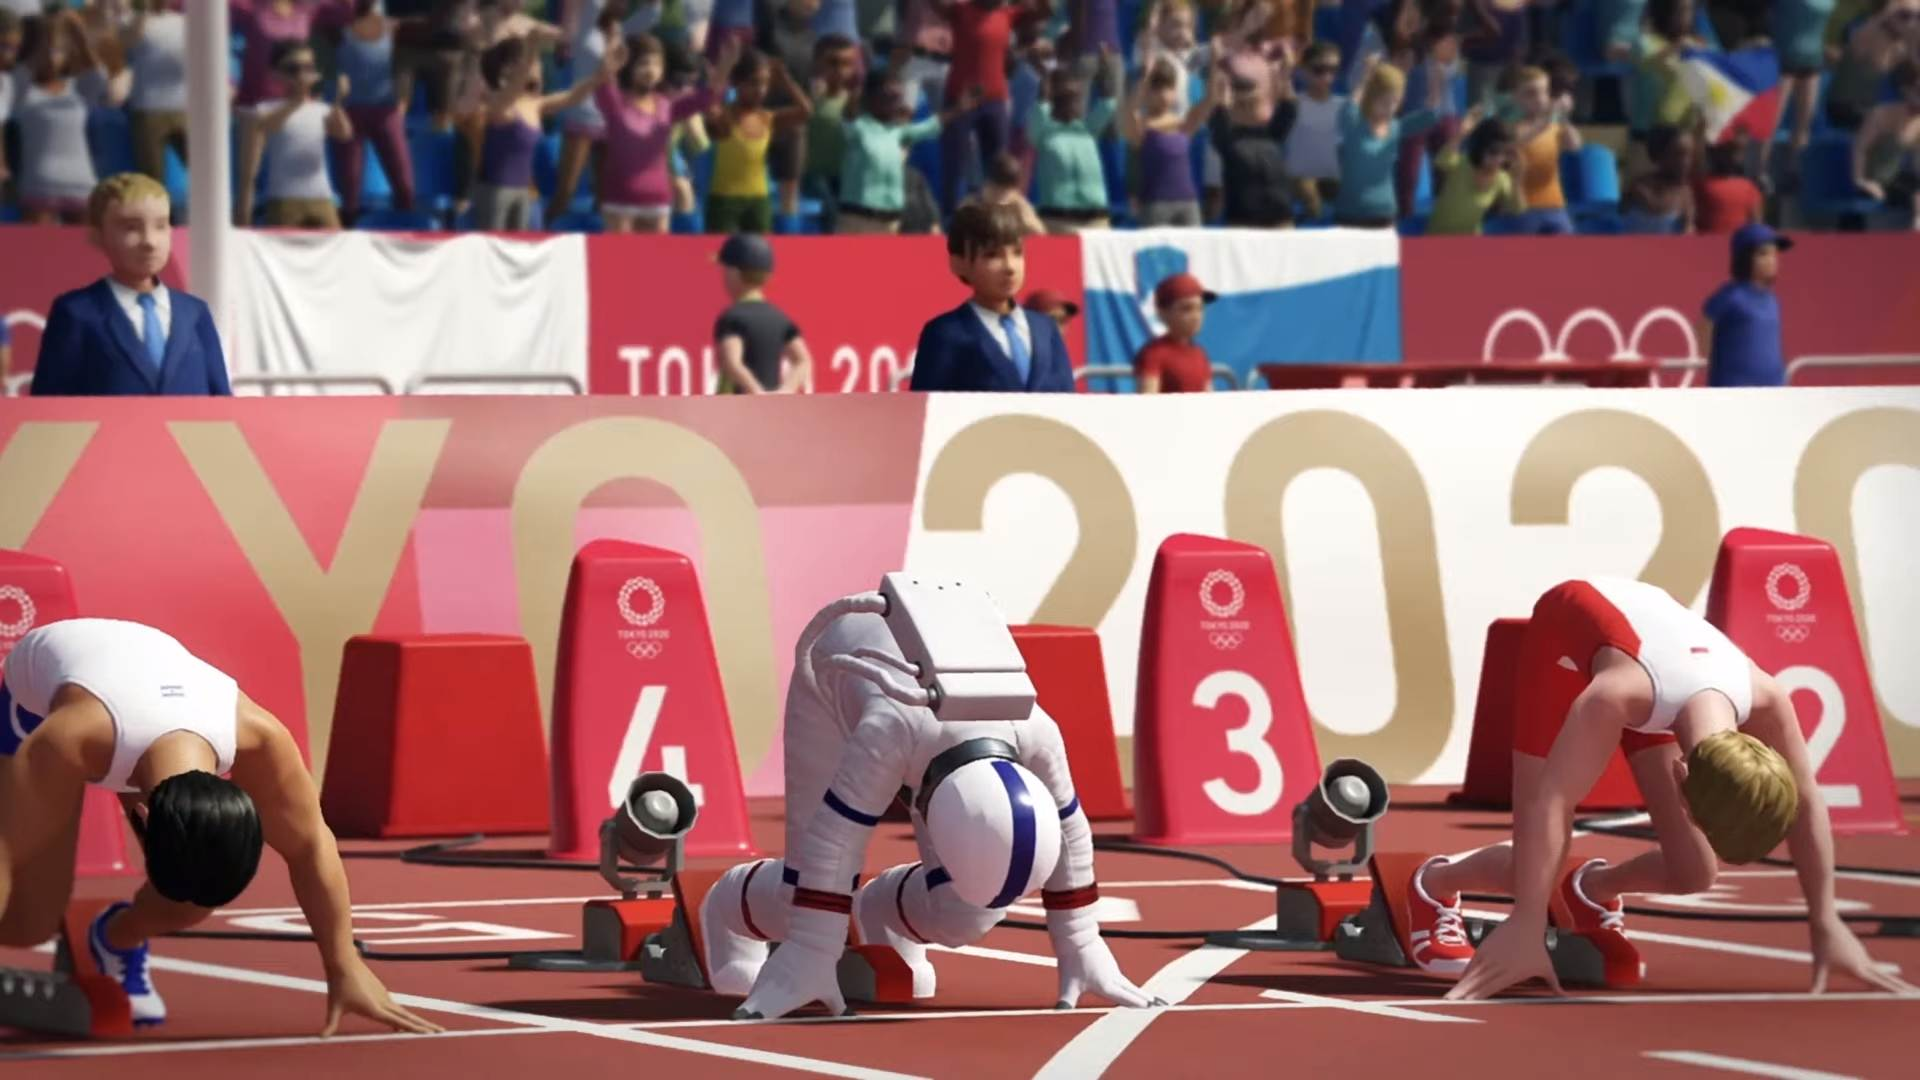 Finally, I can be the track-and-field astronaut of my dreams in Olympic Games Tokyo 2020: The Official Video Game screenshot